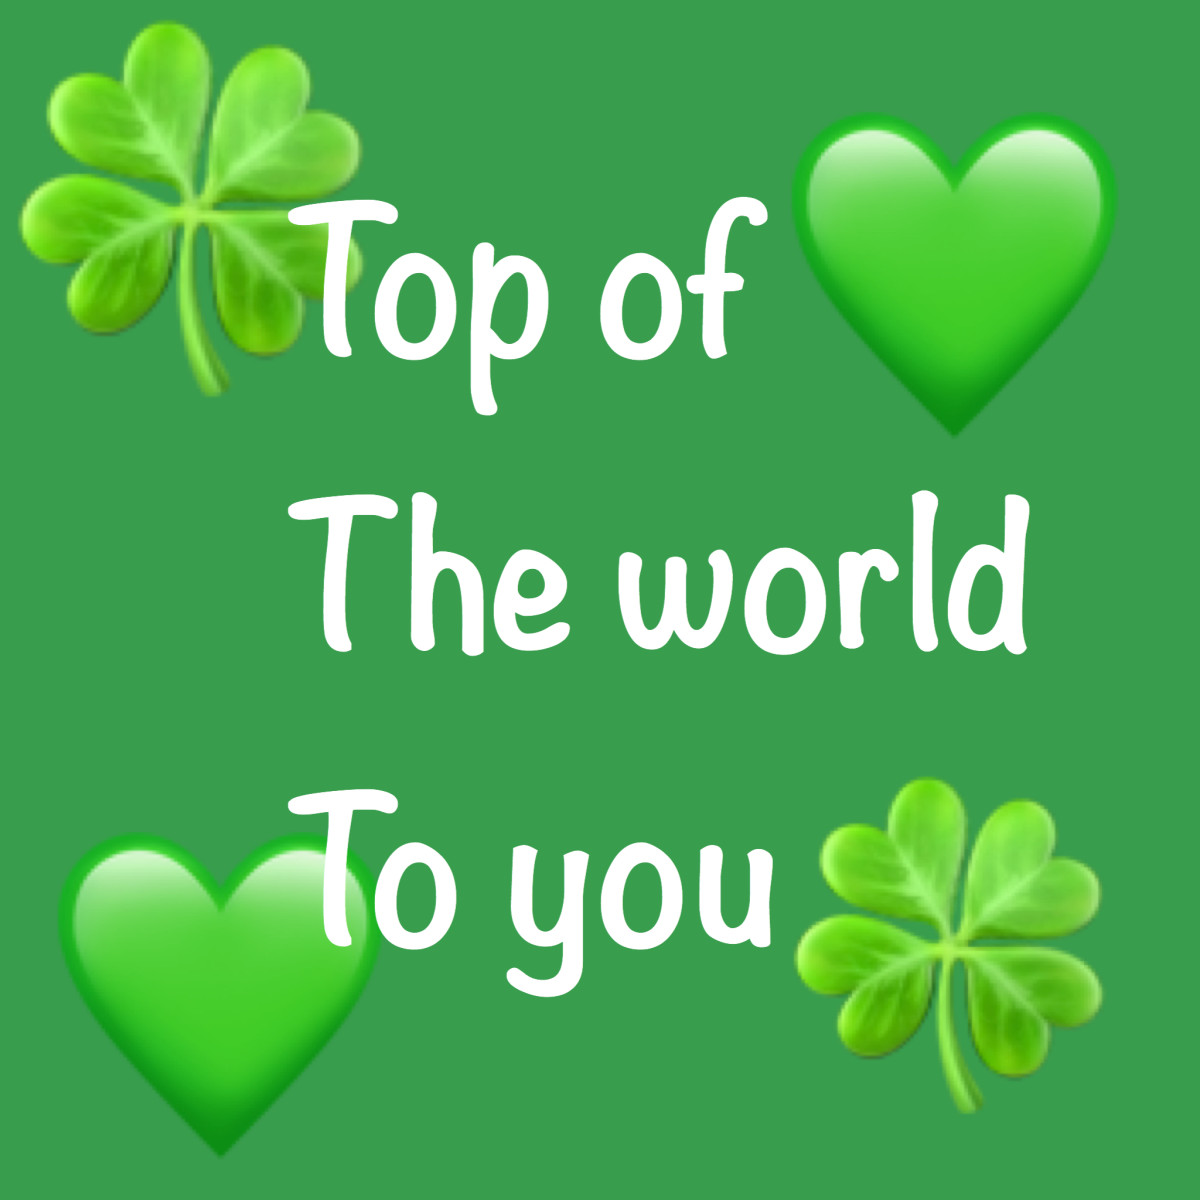 Irish Quotes Inspiration 48 Funny Irish Quotes And Sayings HubPages